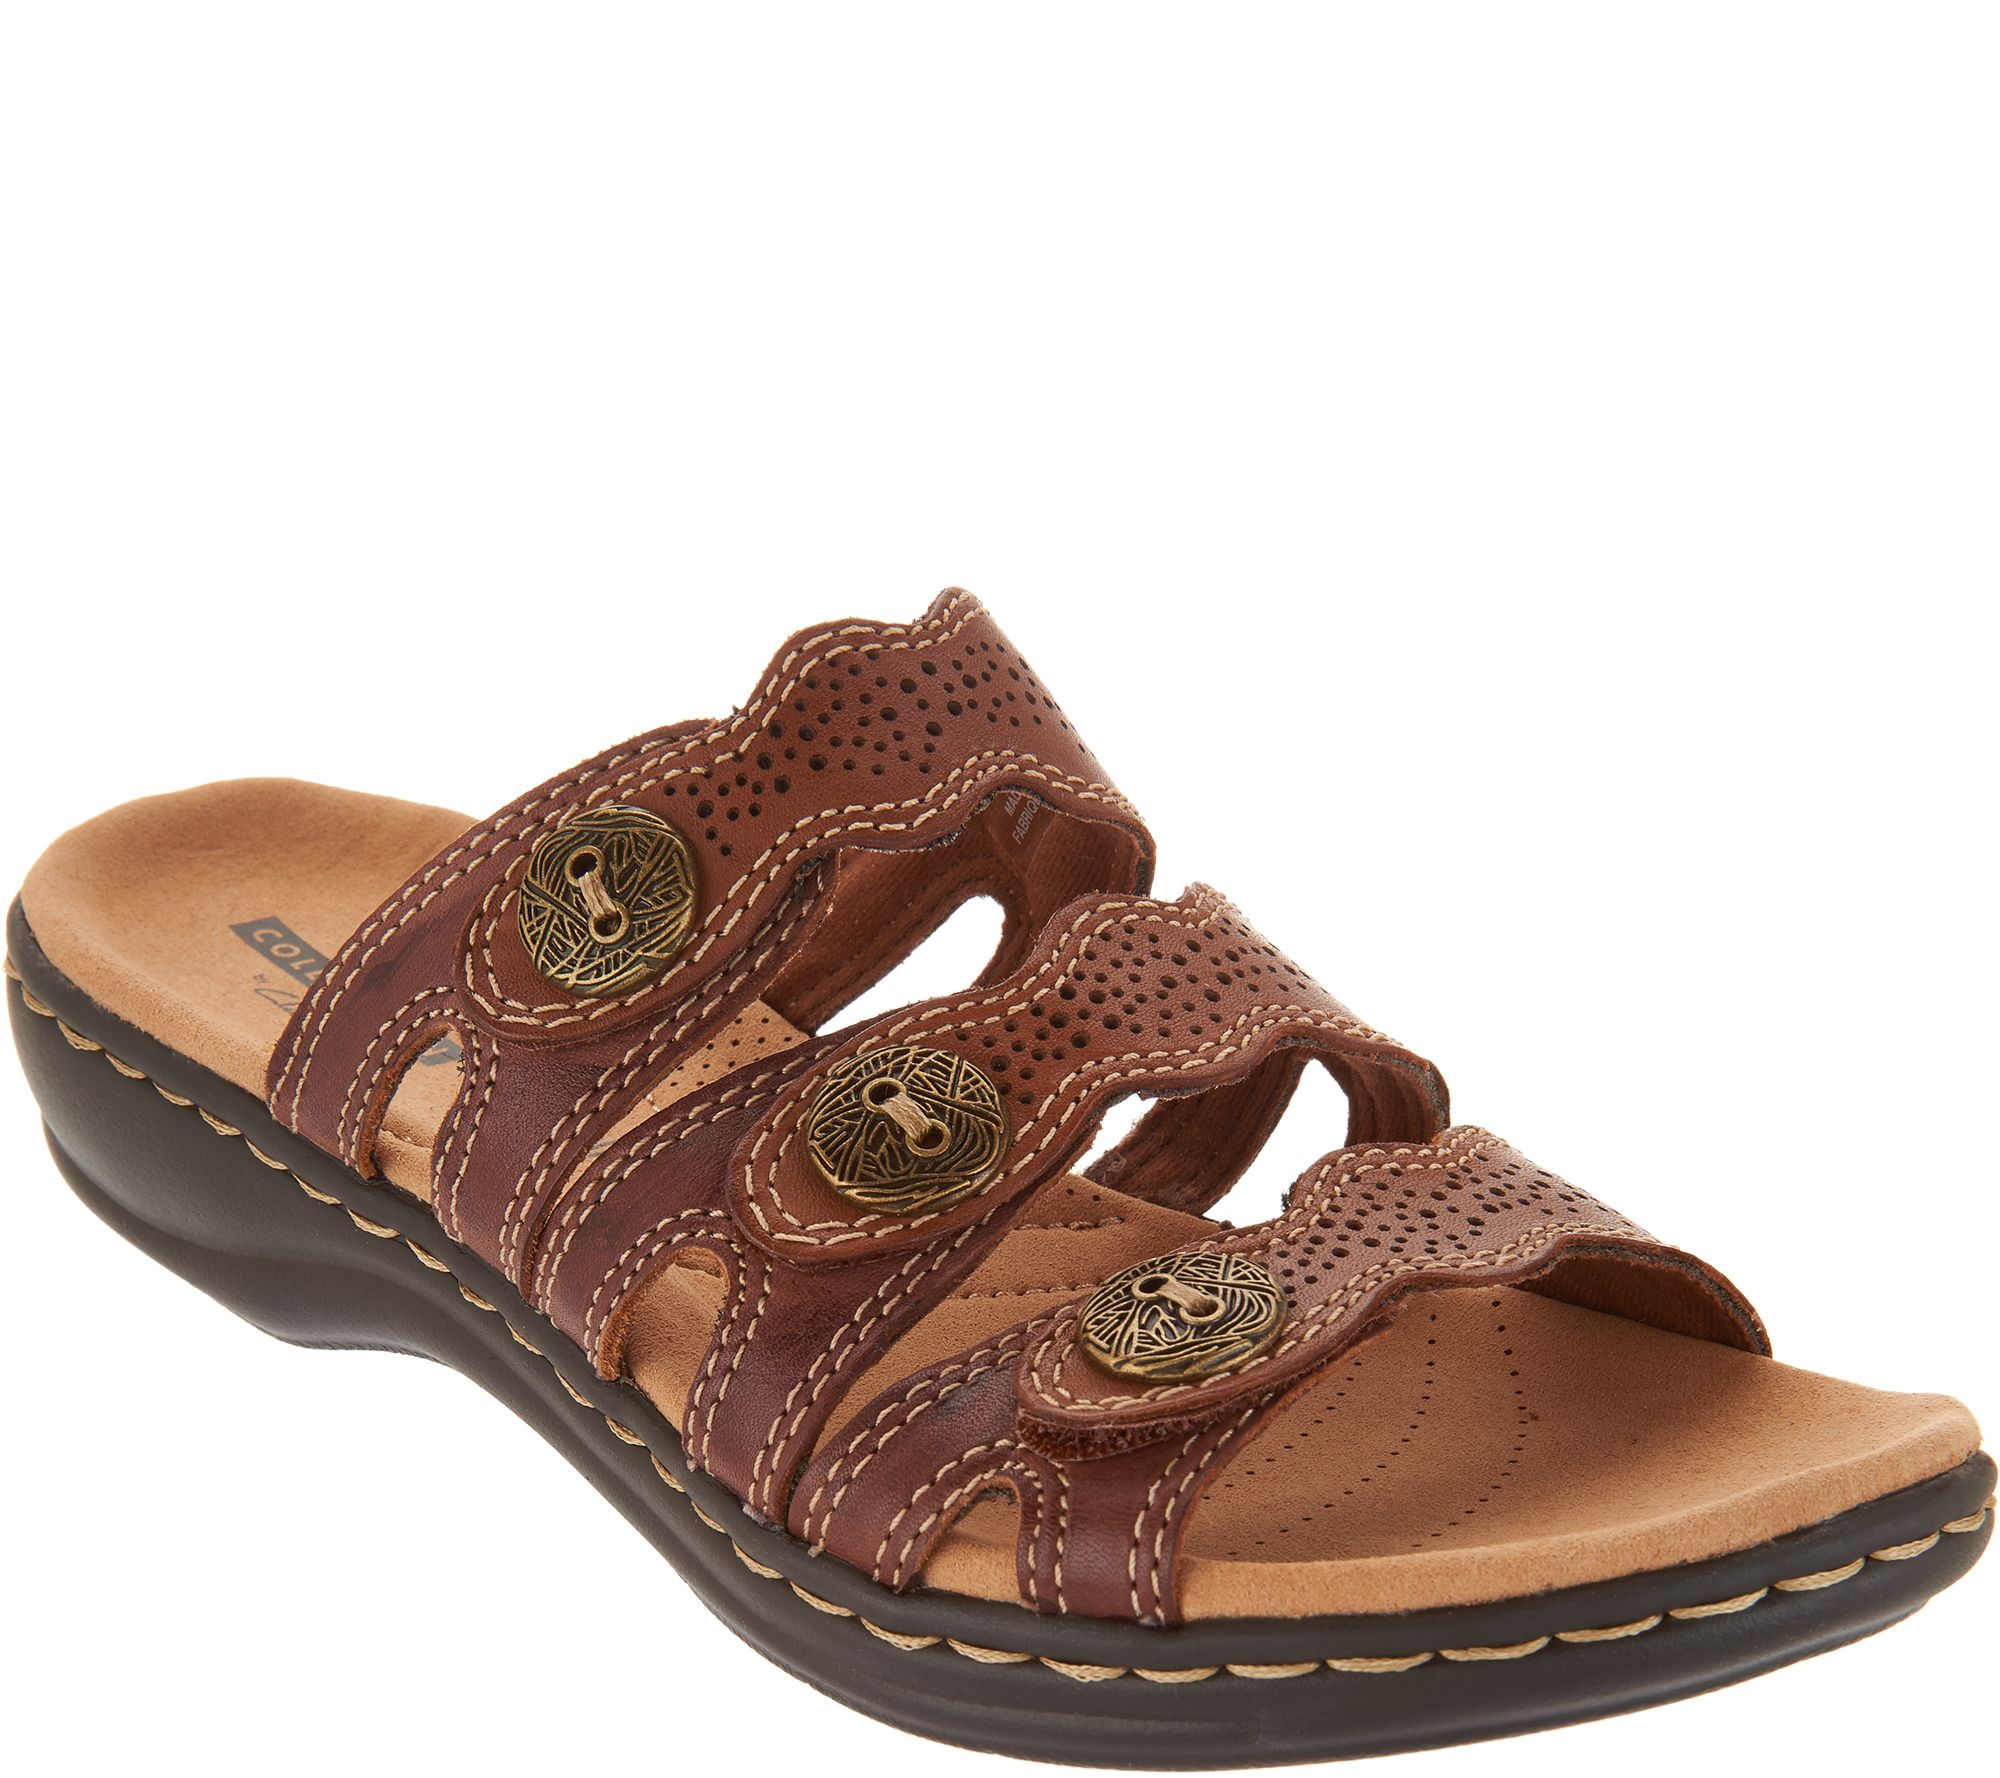 c00abe852ba5 Clarks Leather Lightweight Triple Adjust Sandals - Leisa Grace - Page 1 —  QVC.com